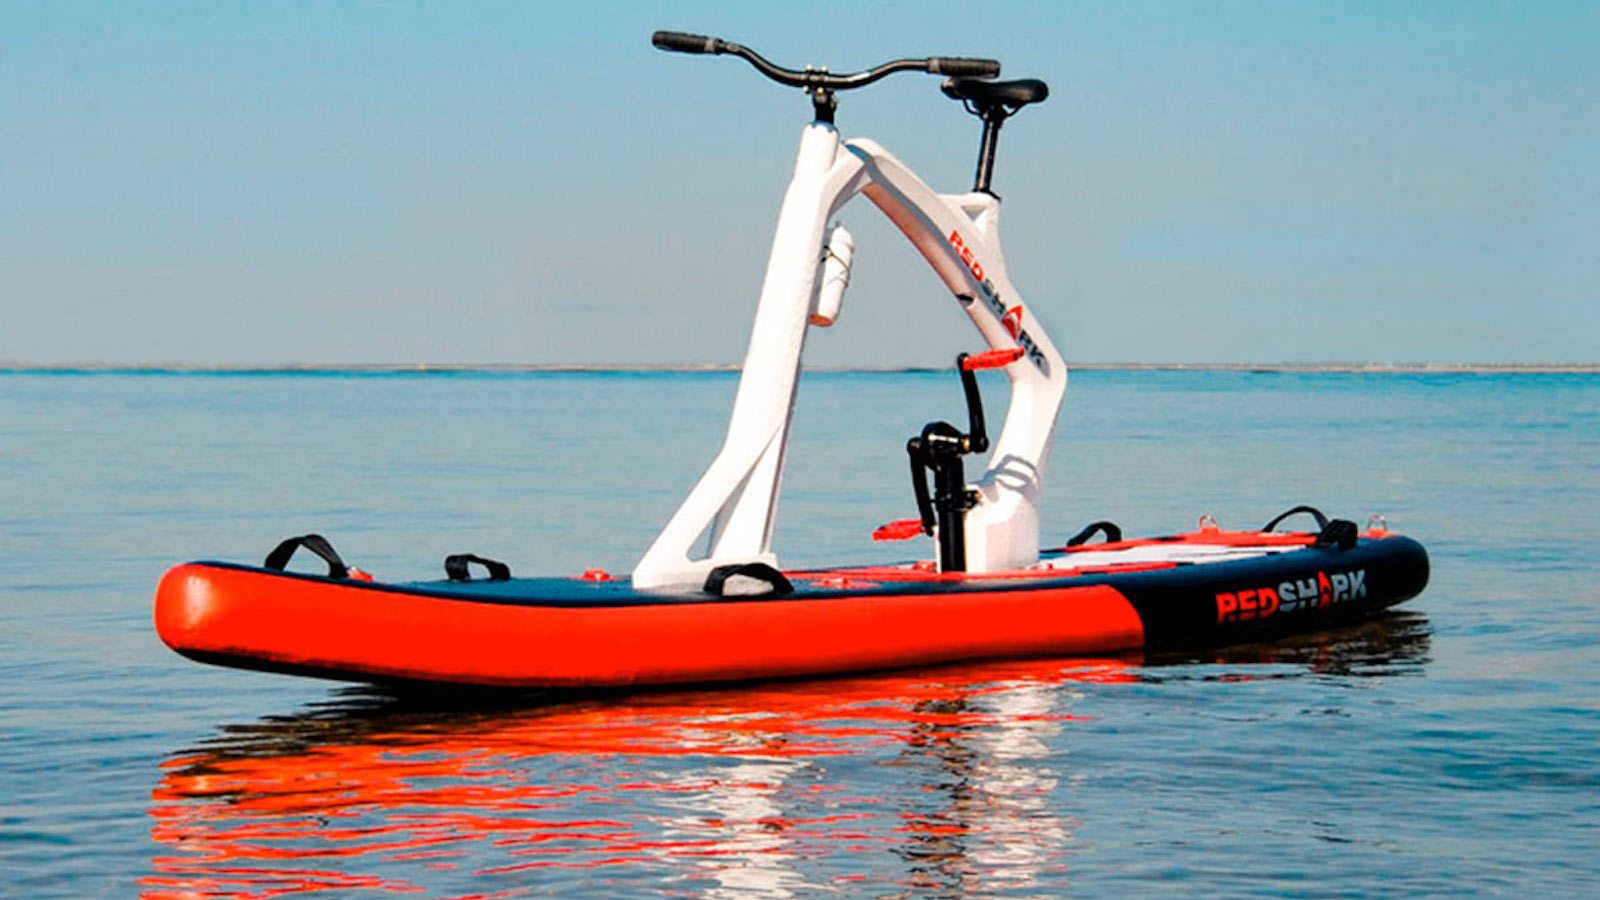 Red Shark Bikes Enjoy Inflatable Stand-up Paddleboard comes with pedals for movement